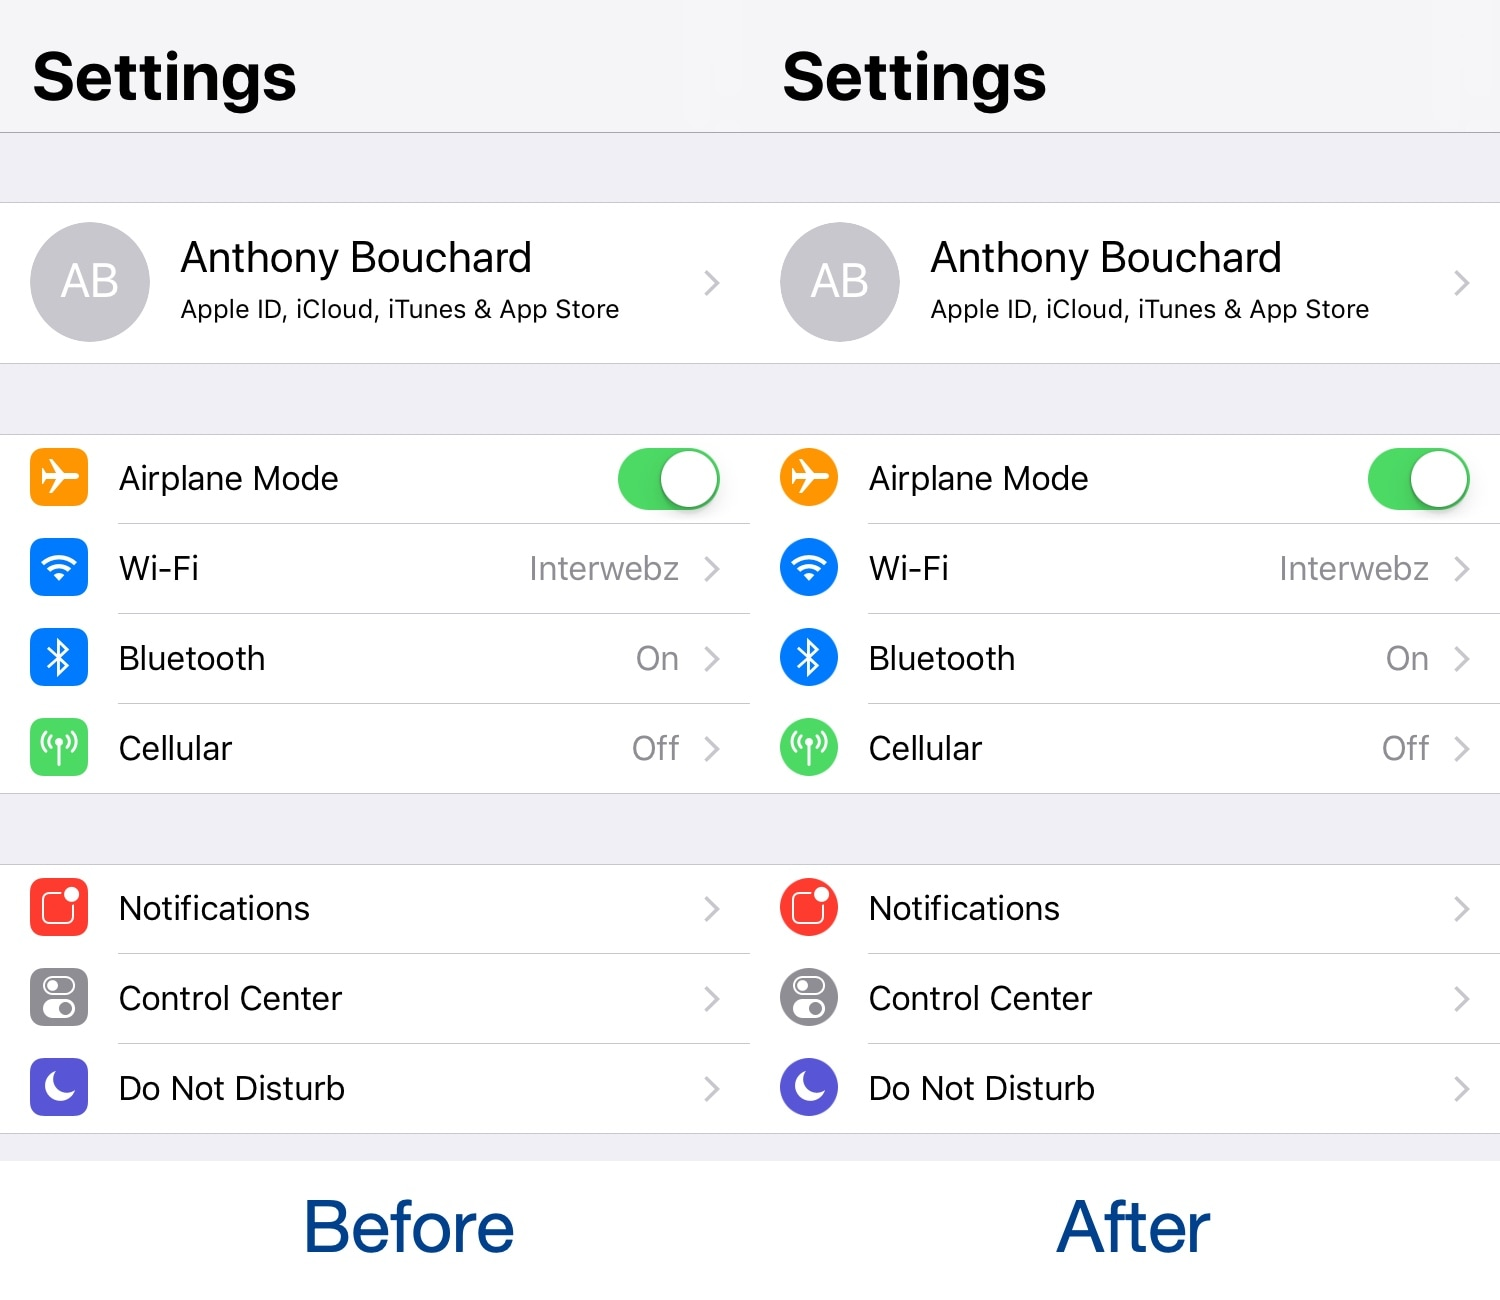 CircleSettings replaces the Settings app's square icons with round ones